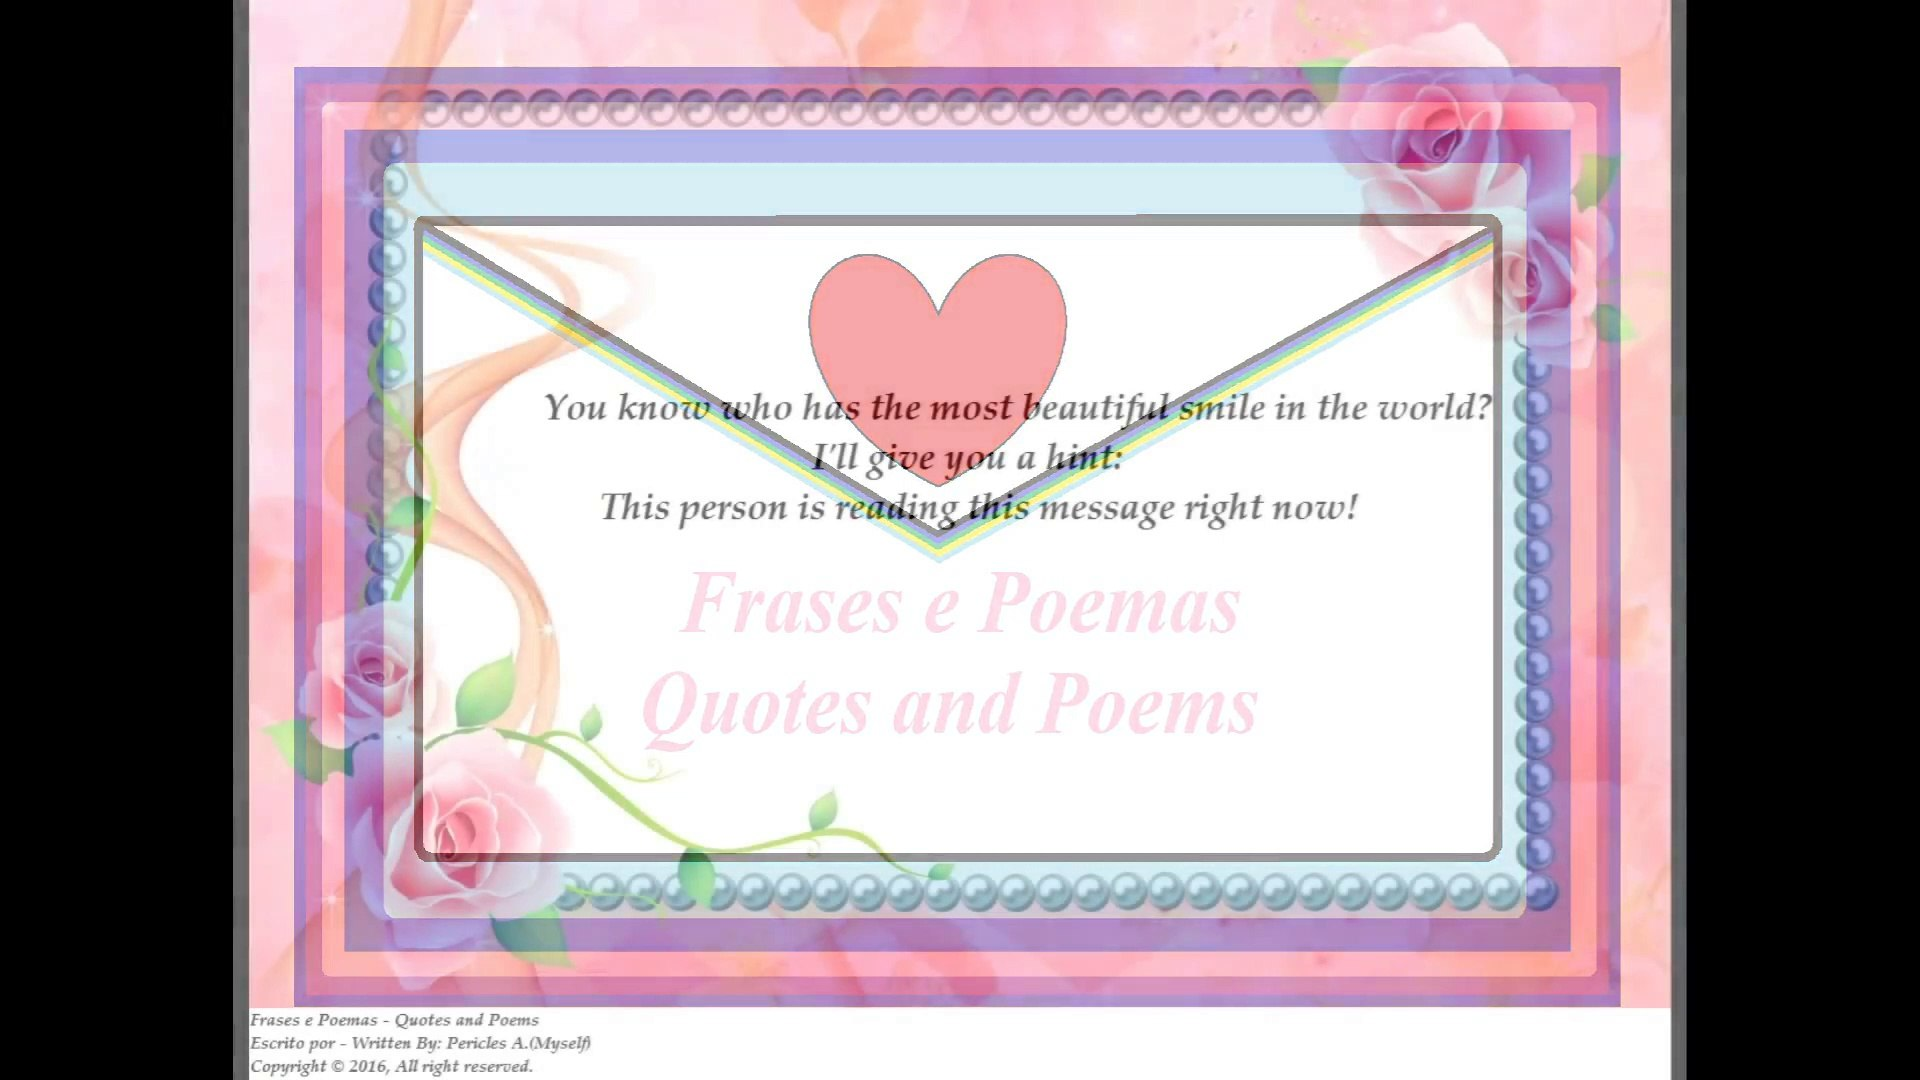 You Know Who Has The Most Beautiful Smile In The World Quotes And Poems